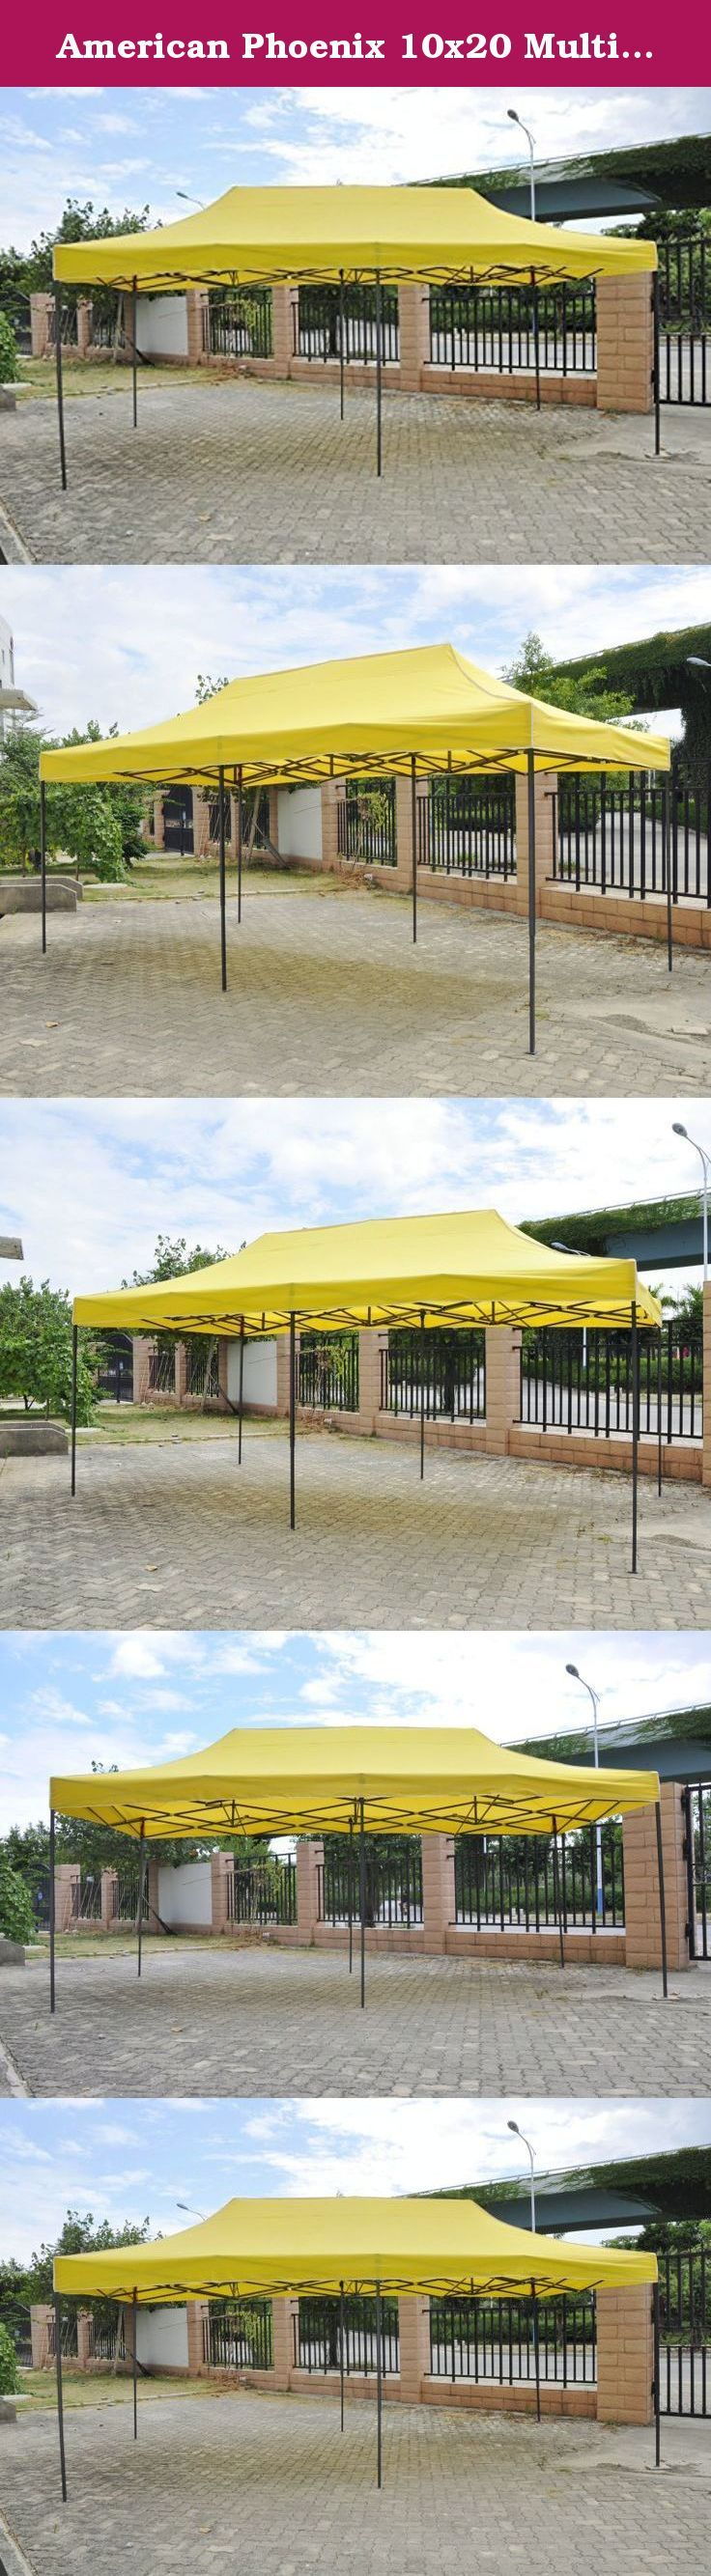 American Phoenix 10x20 Multi Color and Size Portable Event Canopy Tent, Canopy Tent, Party Tent Gazebo Canopy Commercial Fair Shelter Car Shelter Wedding Party Easy Pop Up (Yellow, 10x20). You are bidding on Water resistance material canopy tent. Great for setting up at a park or in your own back yard. No tools necessary to assemble. Perfect for Arts and Craft Shows, Swap Meets, Flea Markets, Garage Sales, Fairs, Bake Sales, Camping, Picnics, Parties, Sporting Events... the possibilities…